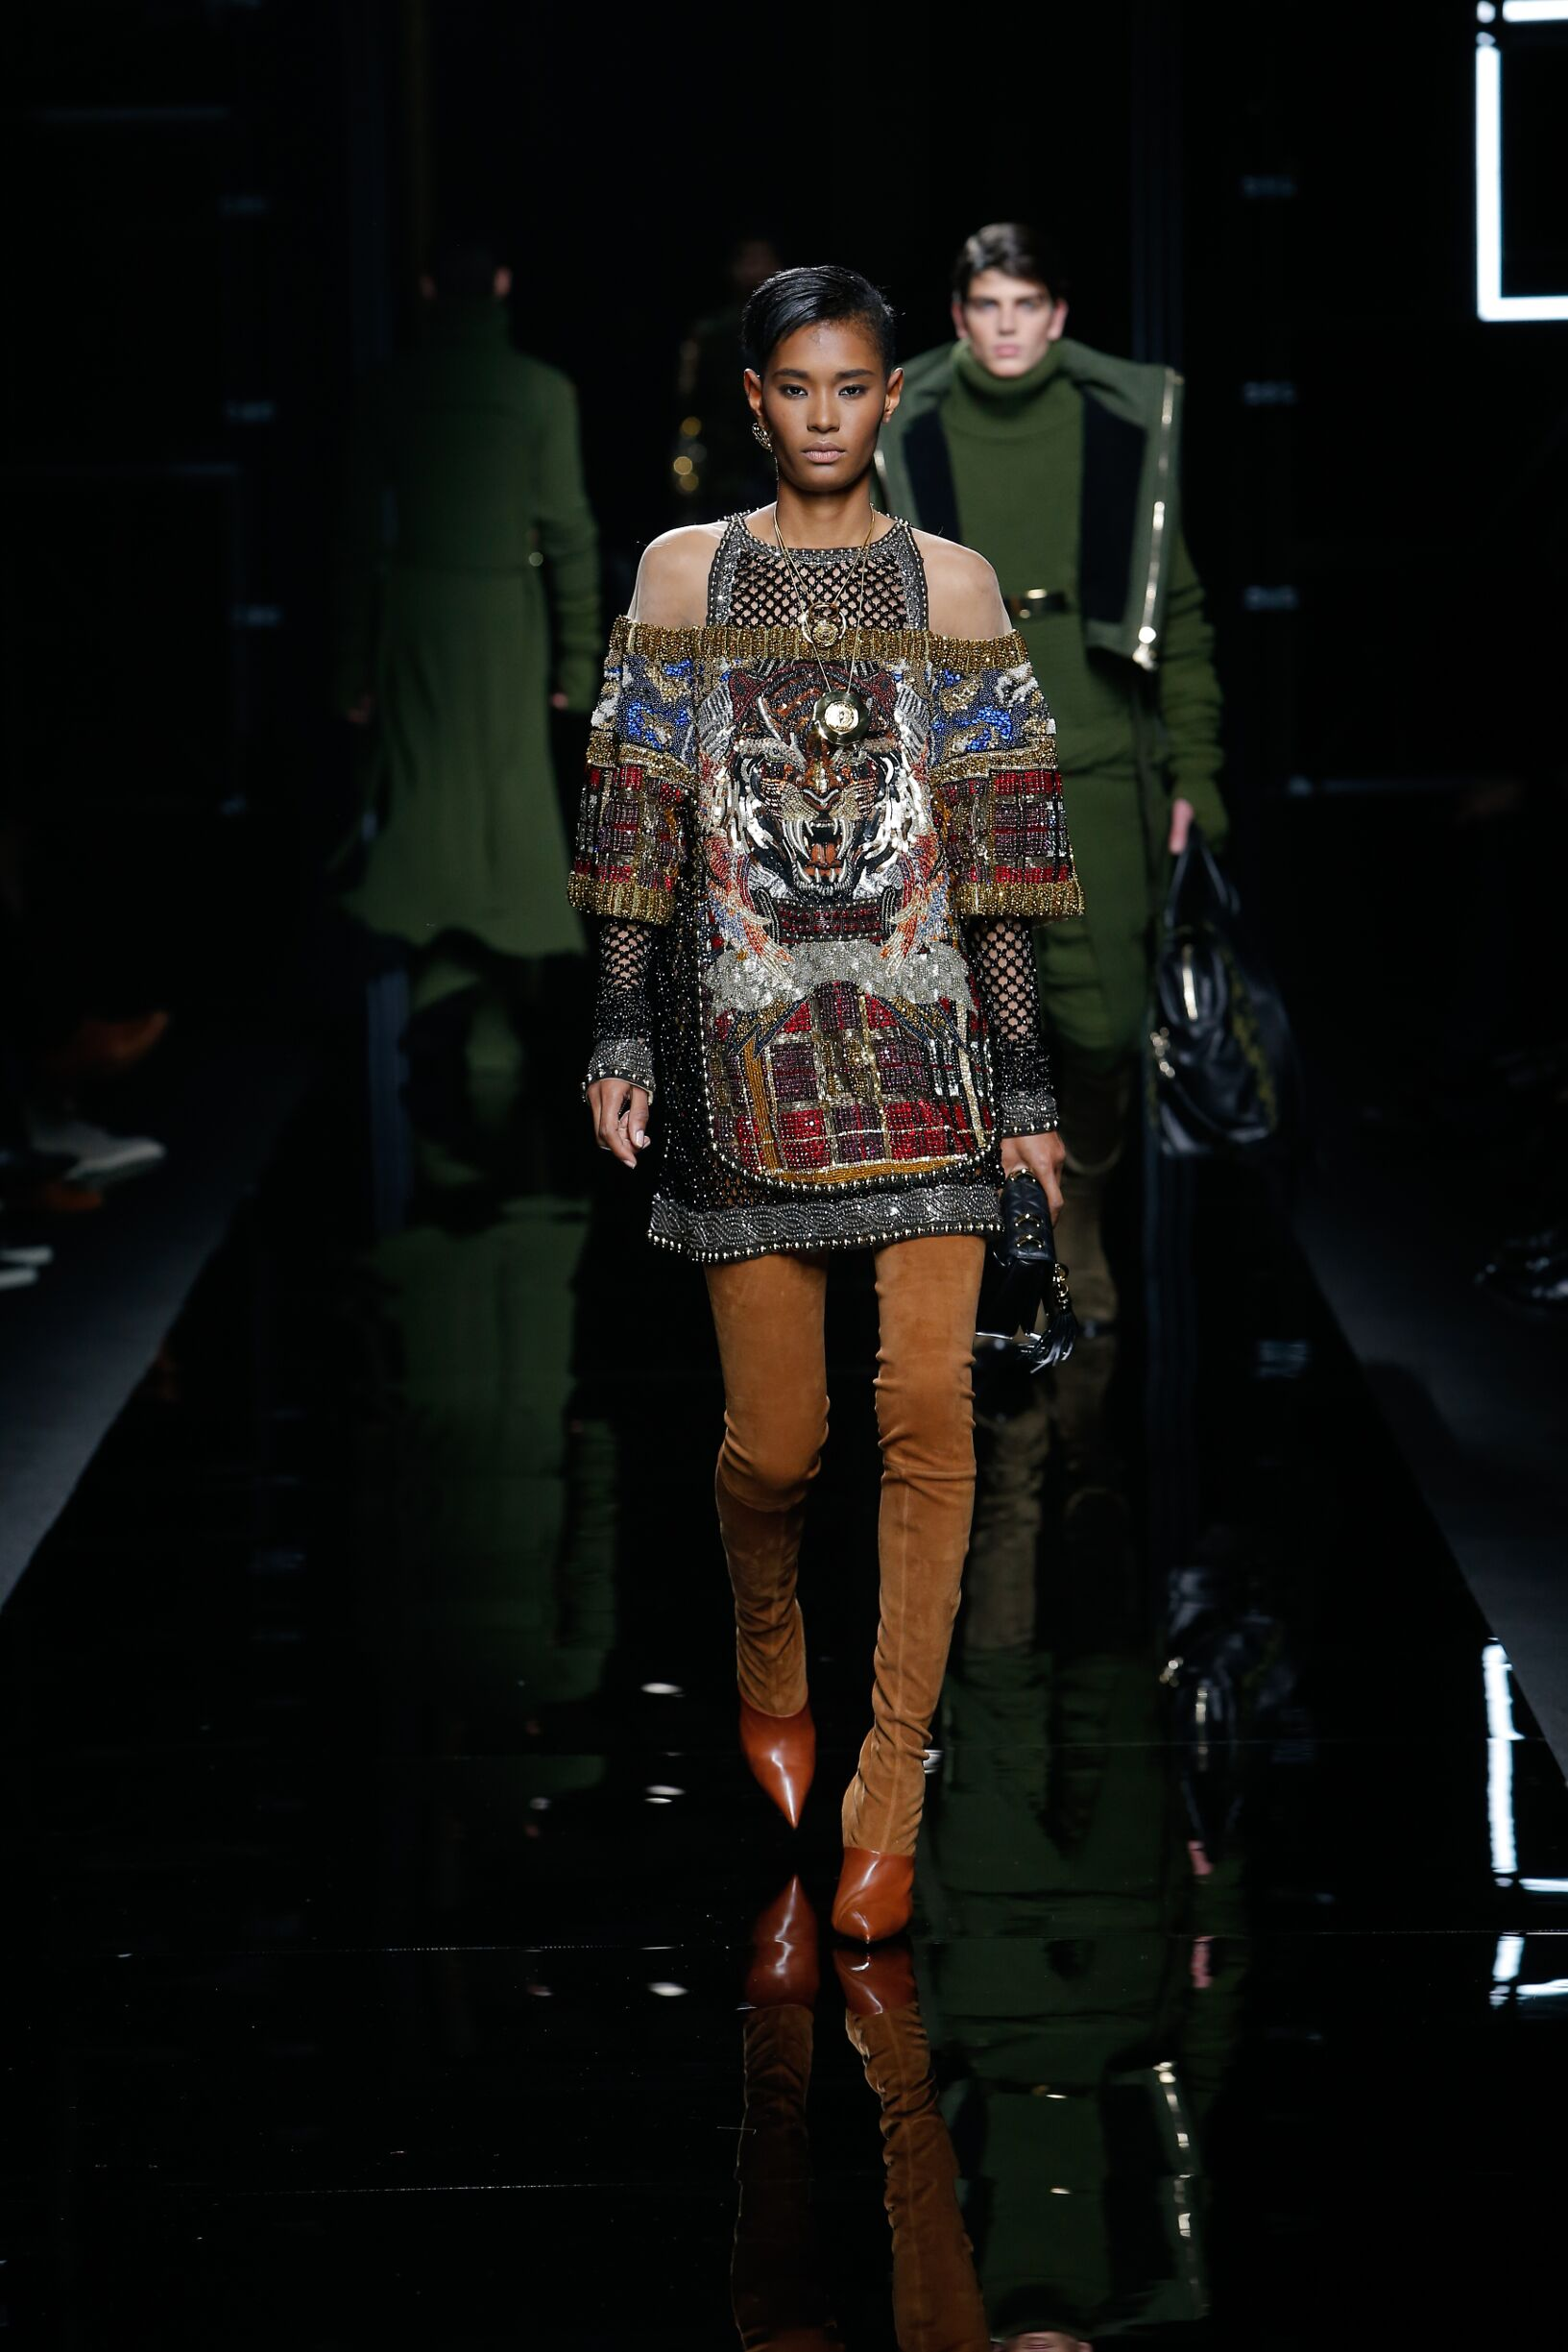 Woman Model Fashion Show Balmain